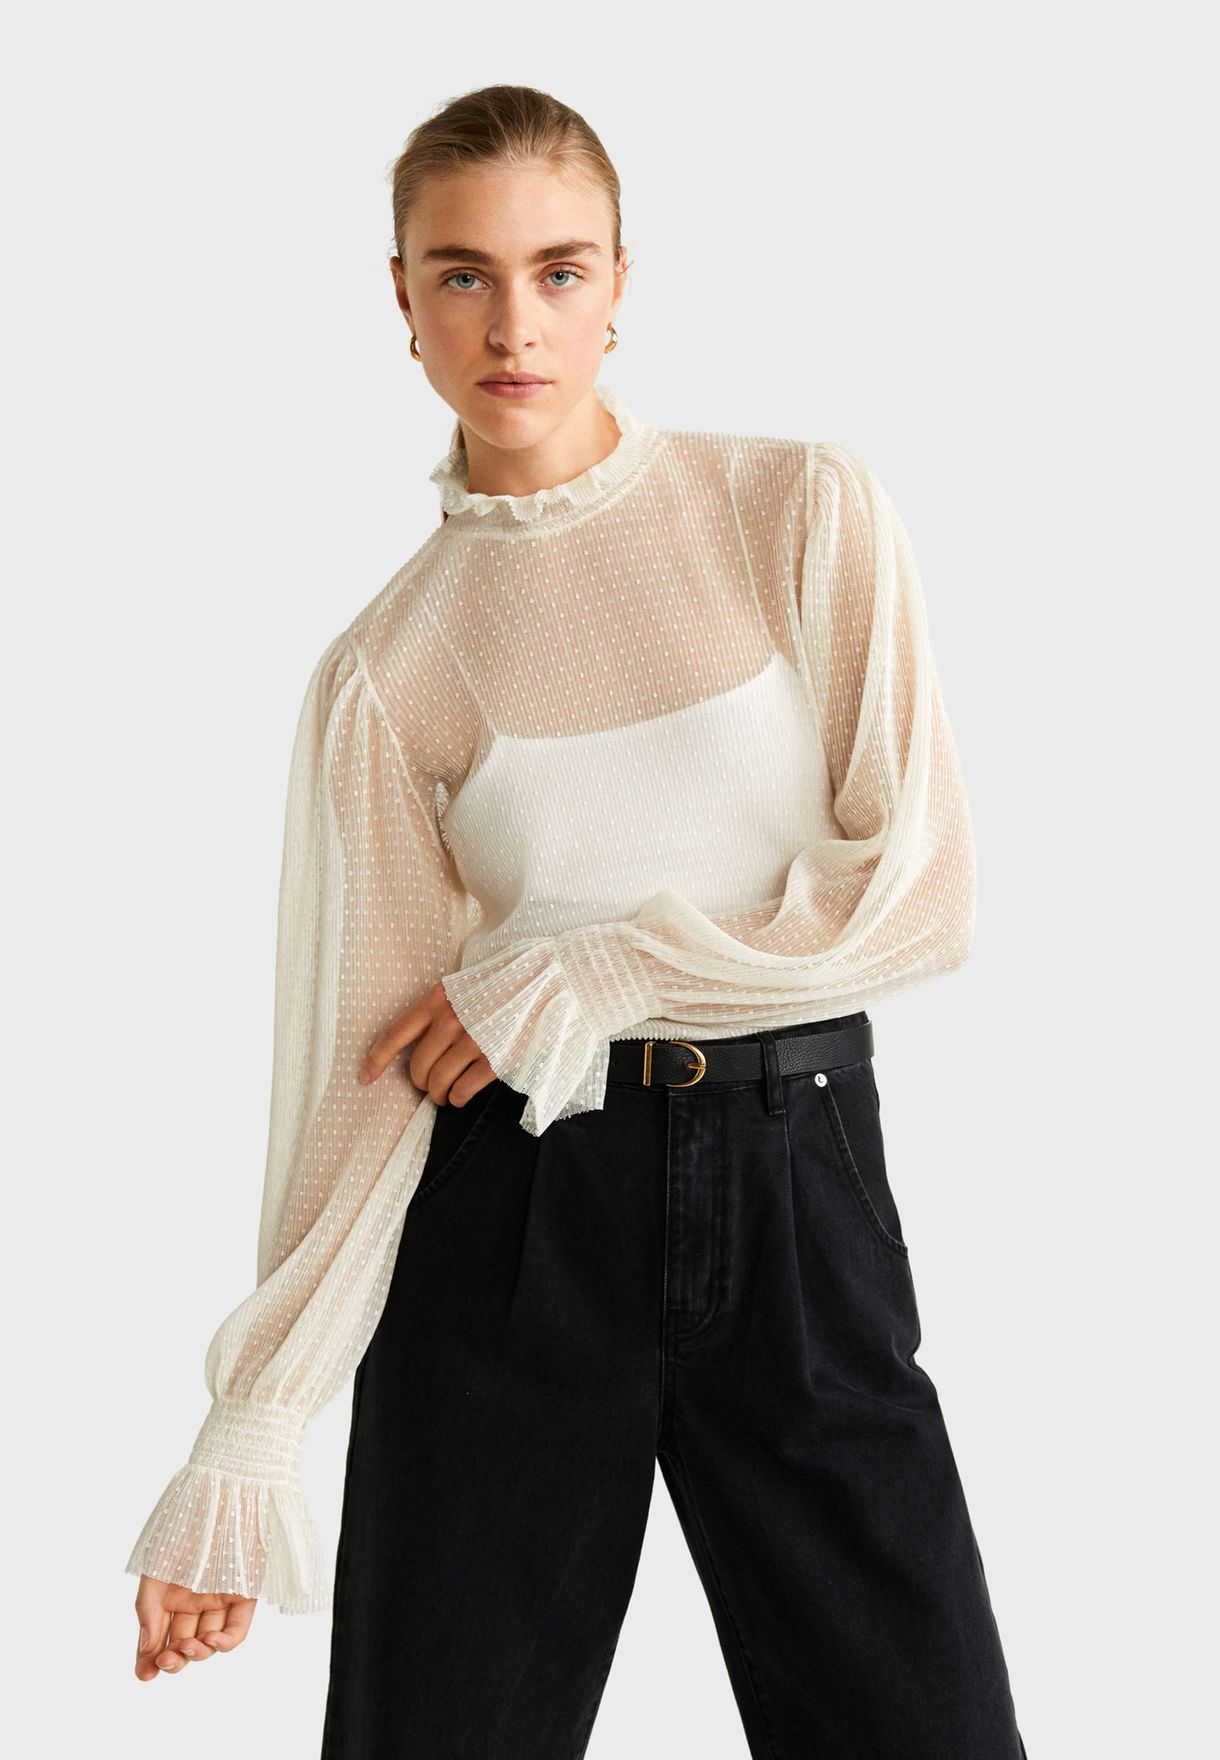 Ruffle Trim Sheer Top